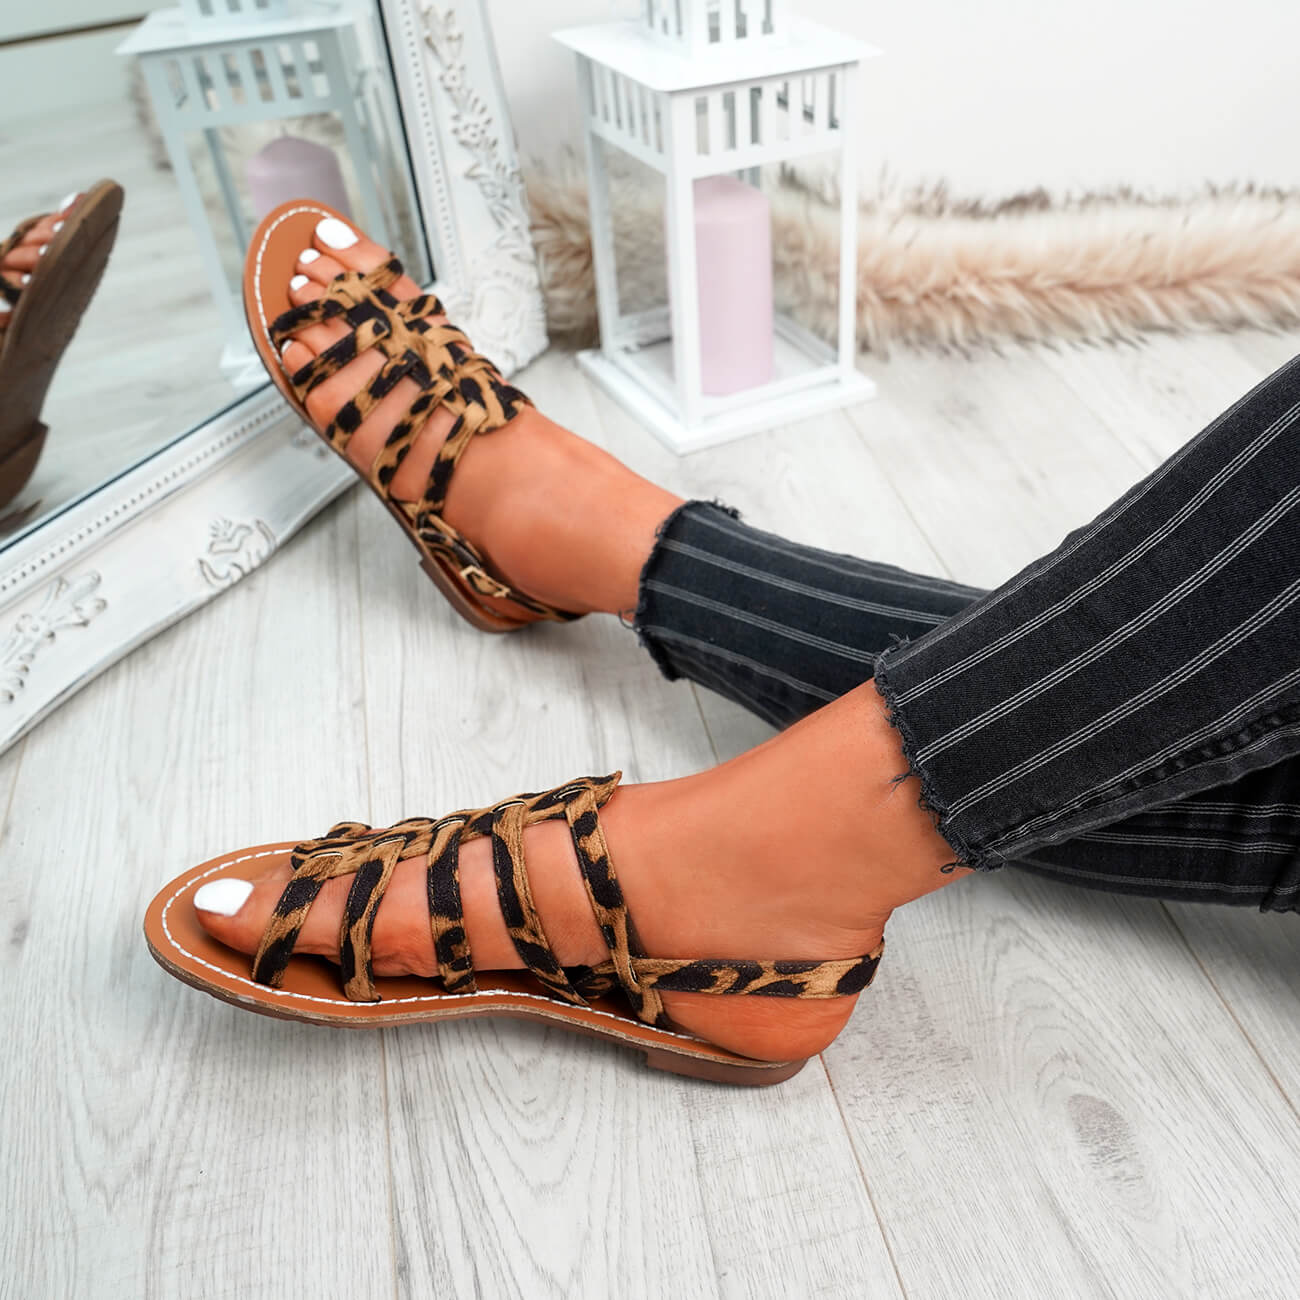 WOMENS-LADIES-BUCKLE-STRAP-FLAT-SUMMER-SANDALS-CASUAL-HOLIDAY-COMFY-SHOES-SIZE thumbnail 23